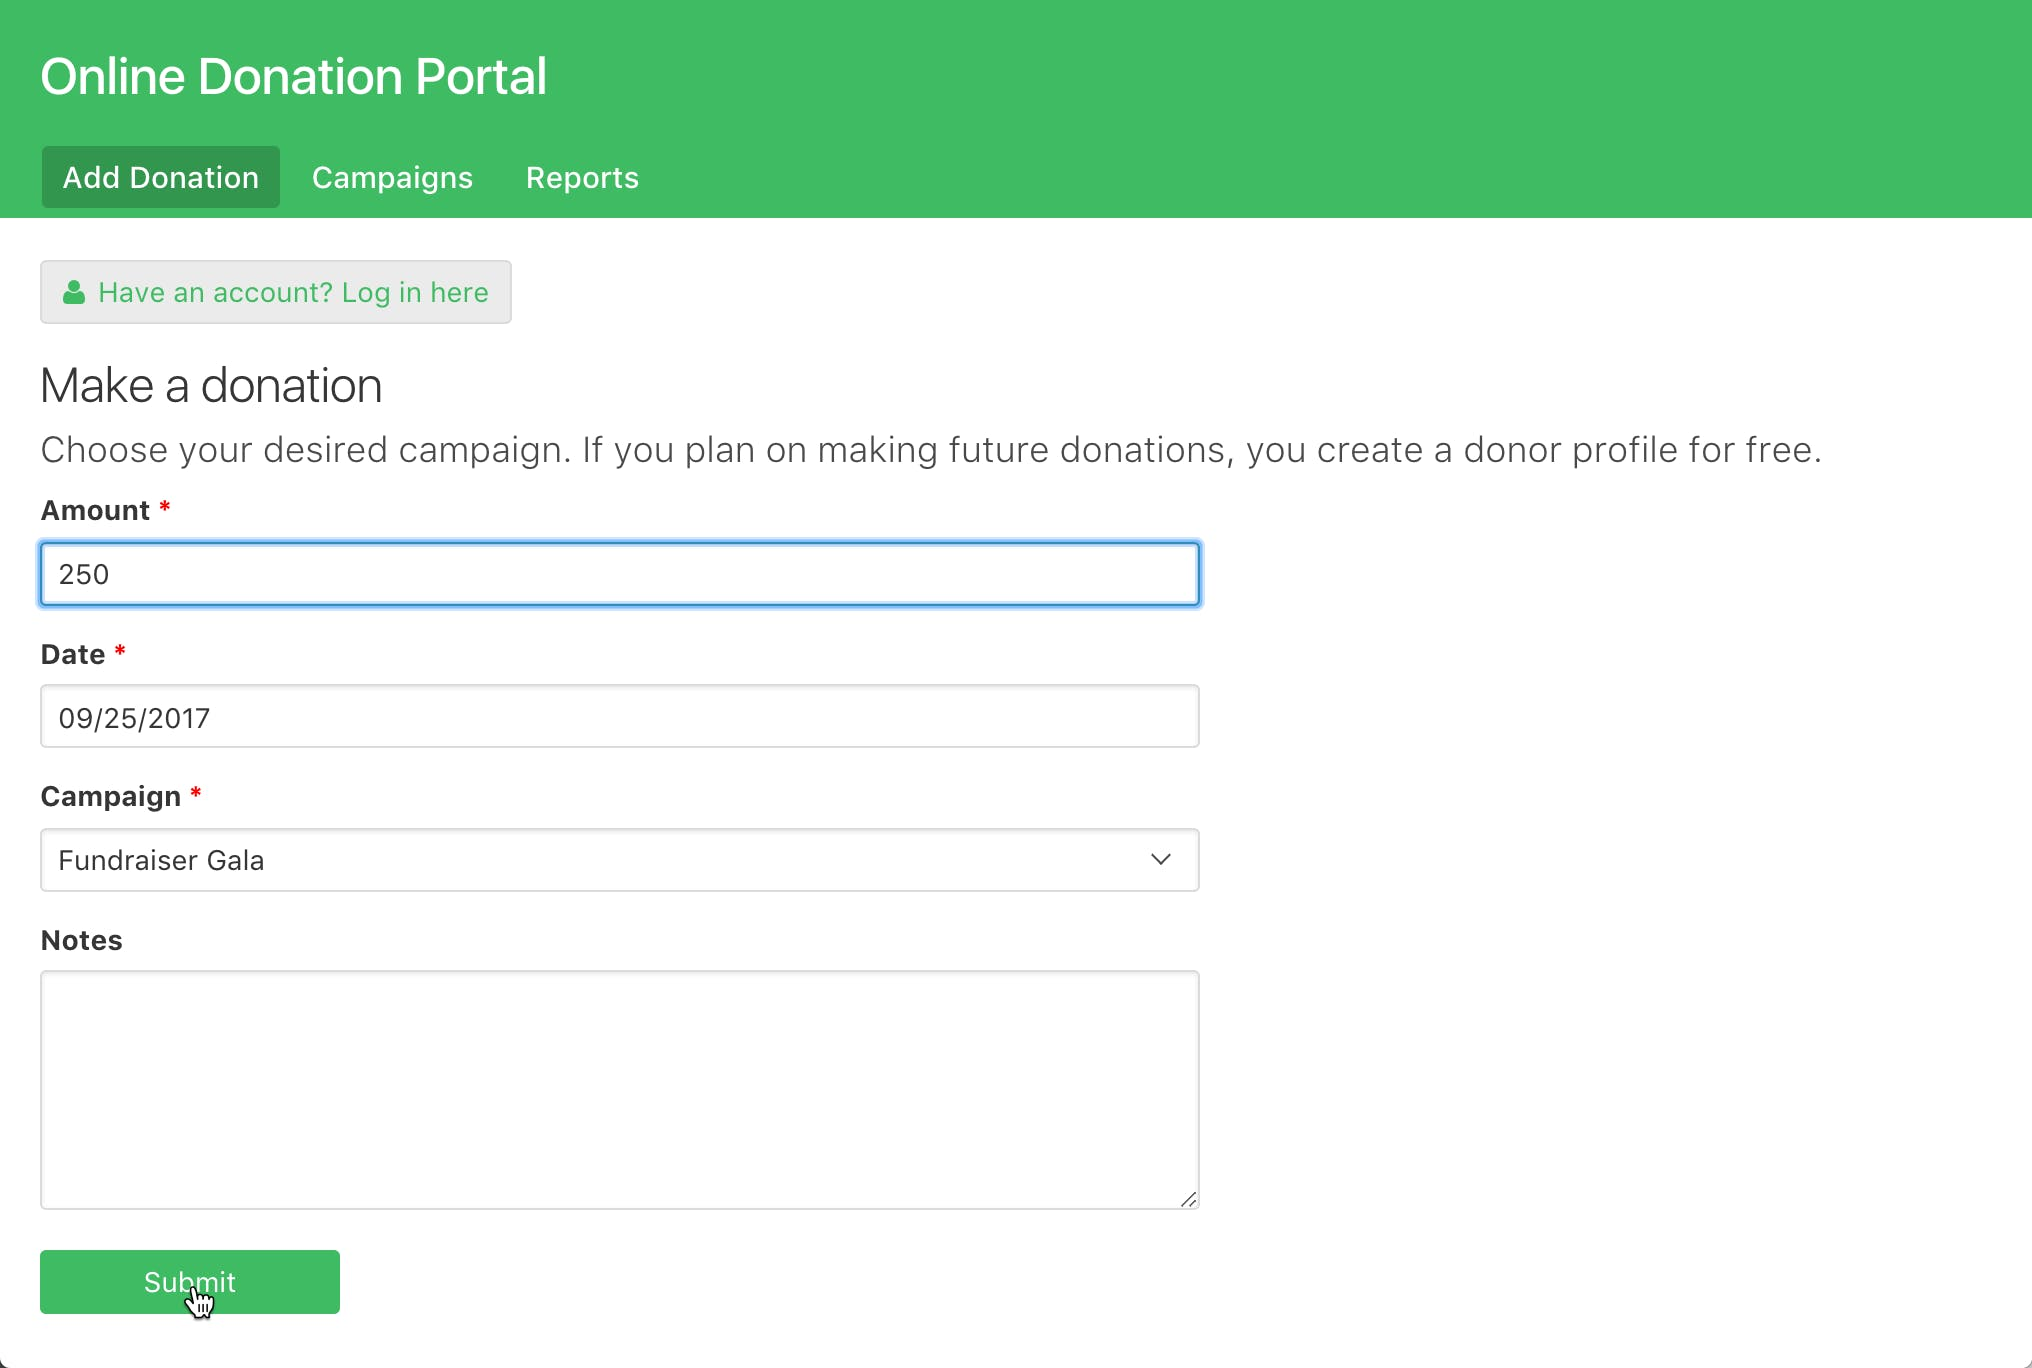 Users can fill out a simple donation form without having to log in.